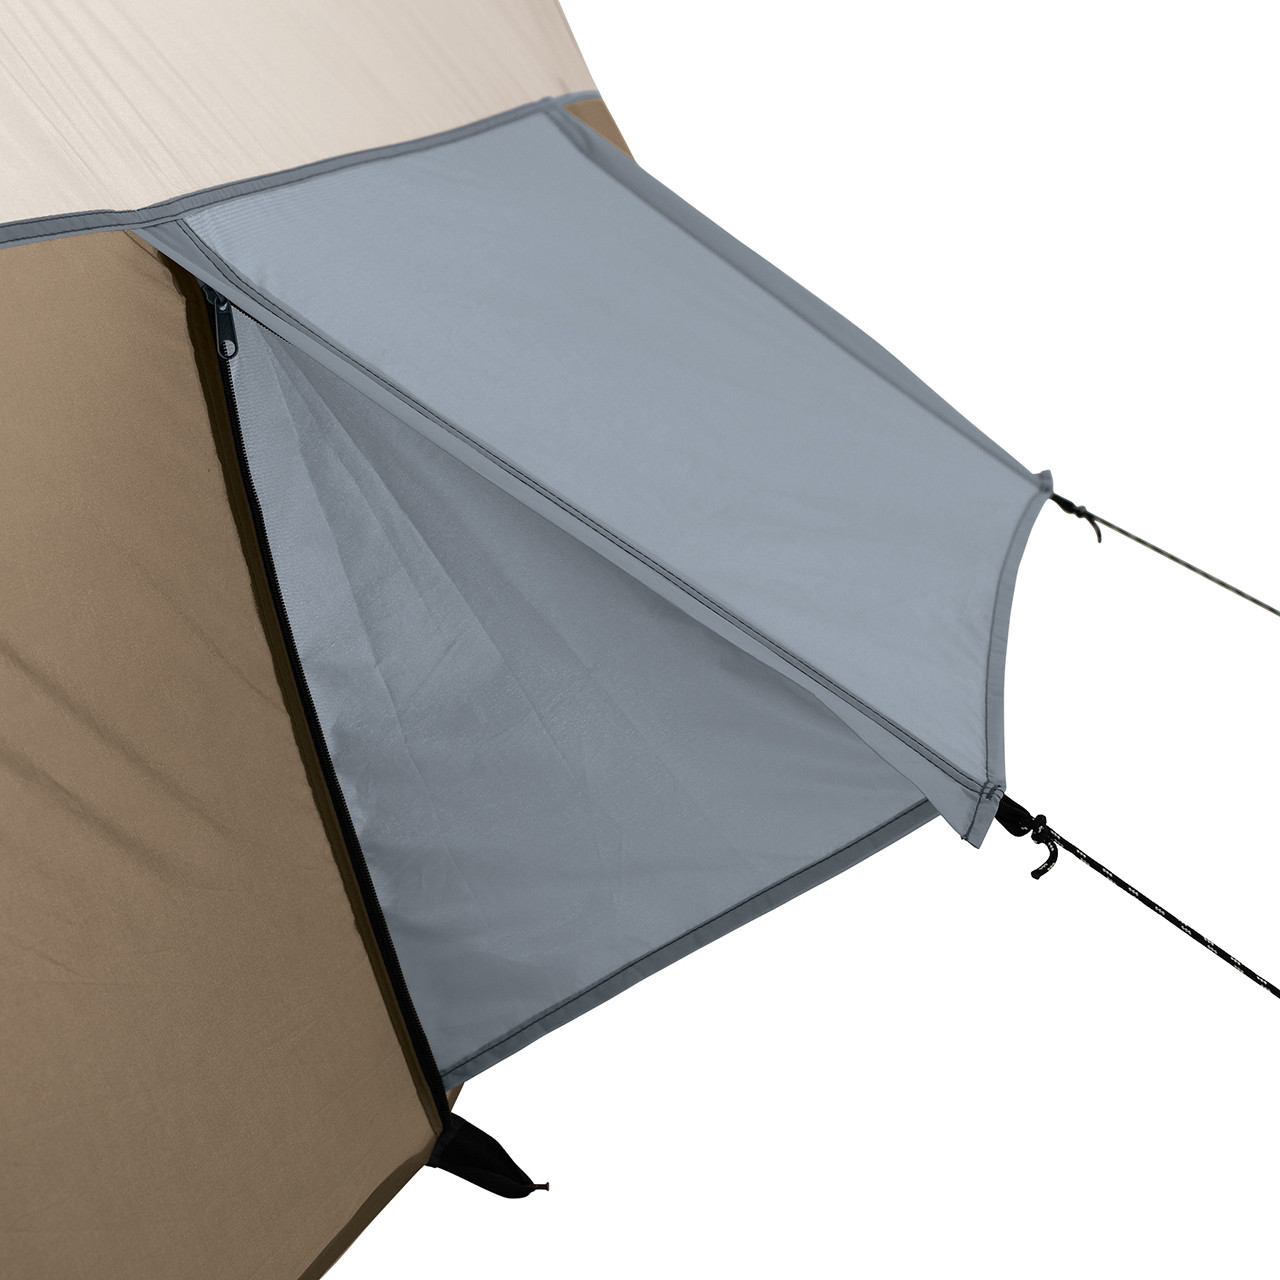 Close up view of a vent zipped open and extended with guy lines on the Wenzel Klondike 8 tent